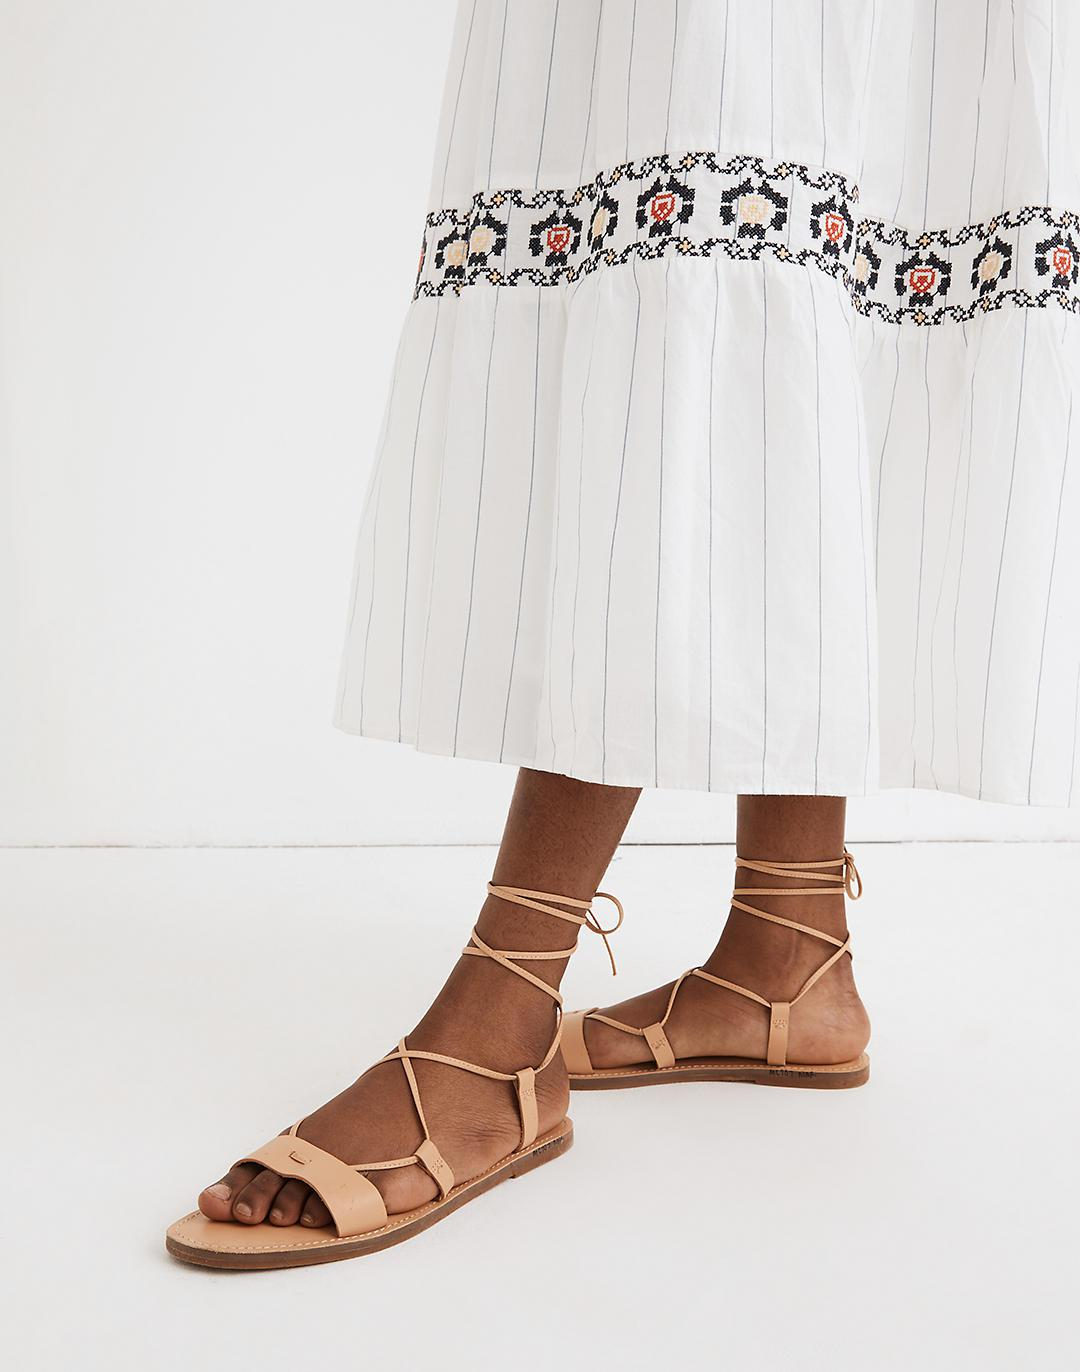 The Boardwalk Lace-Up Sandal in Leather 3